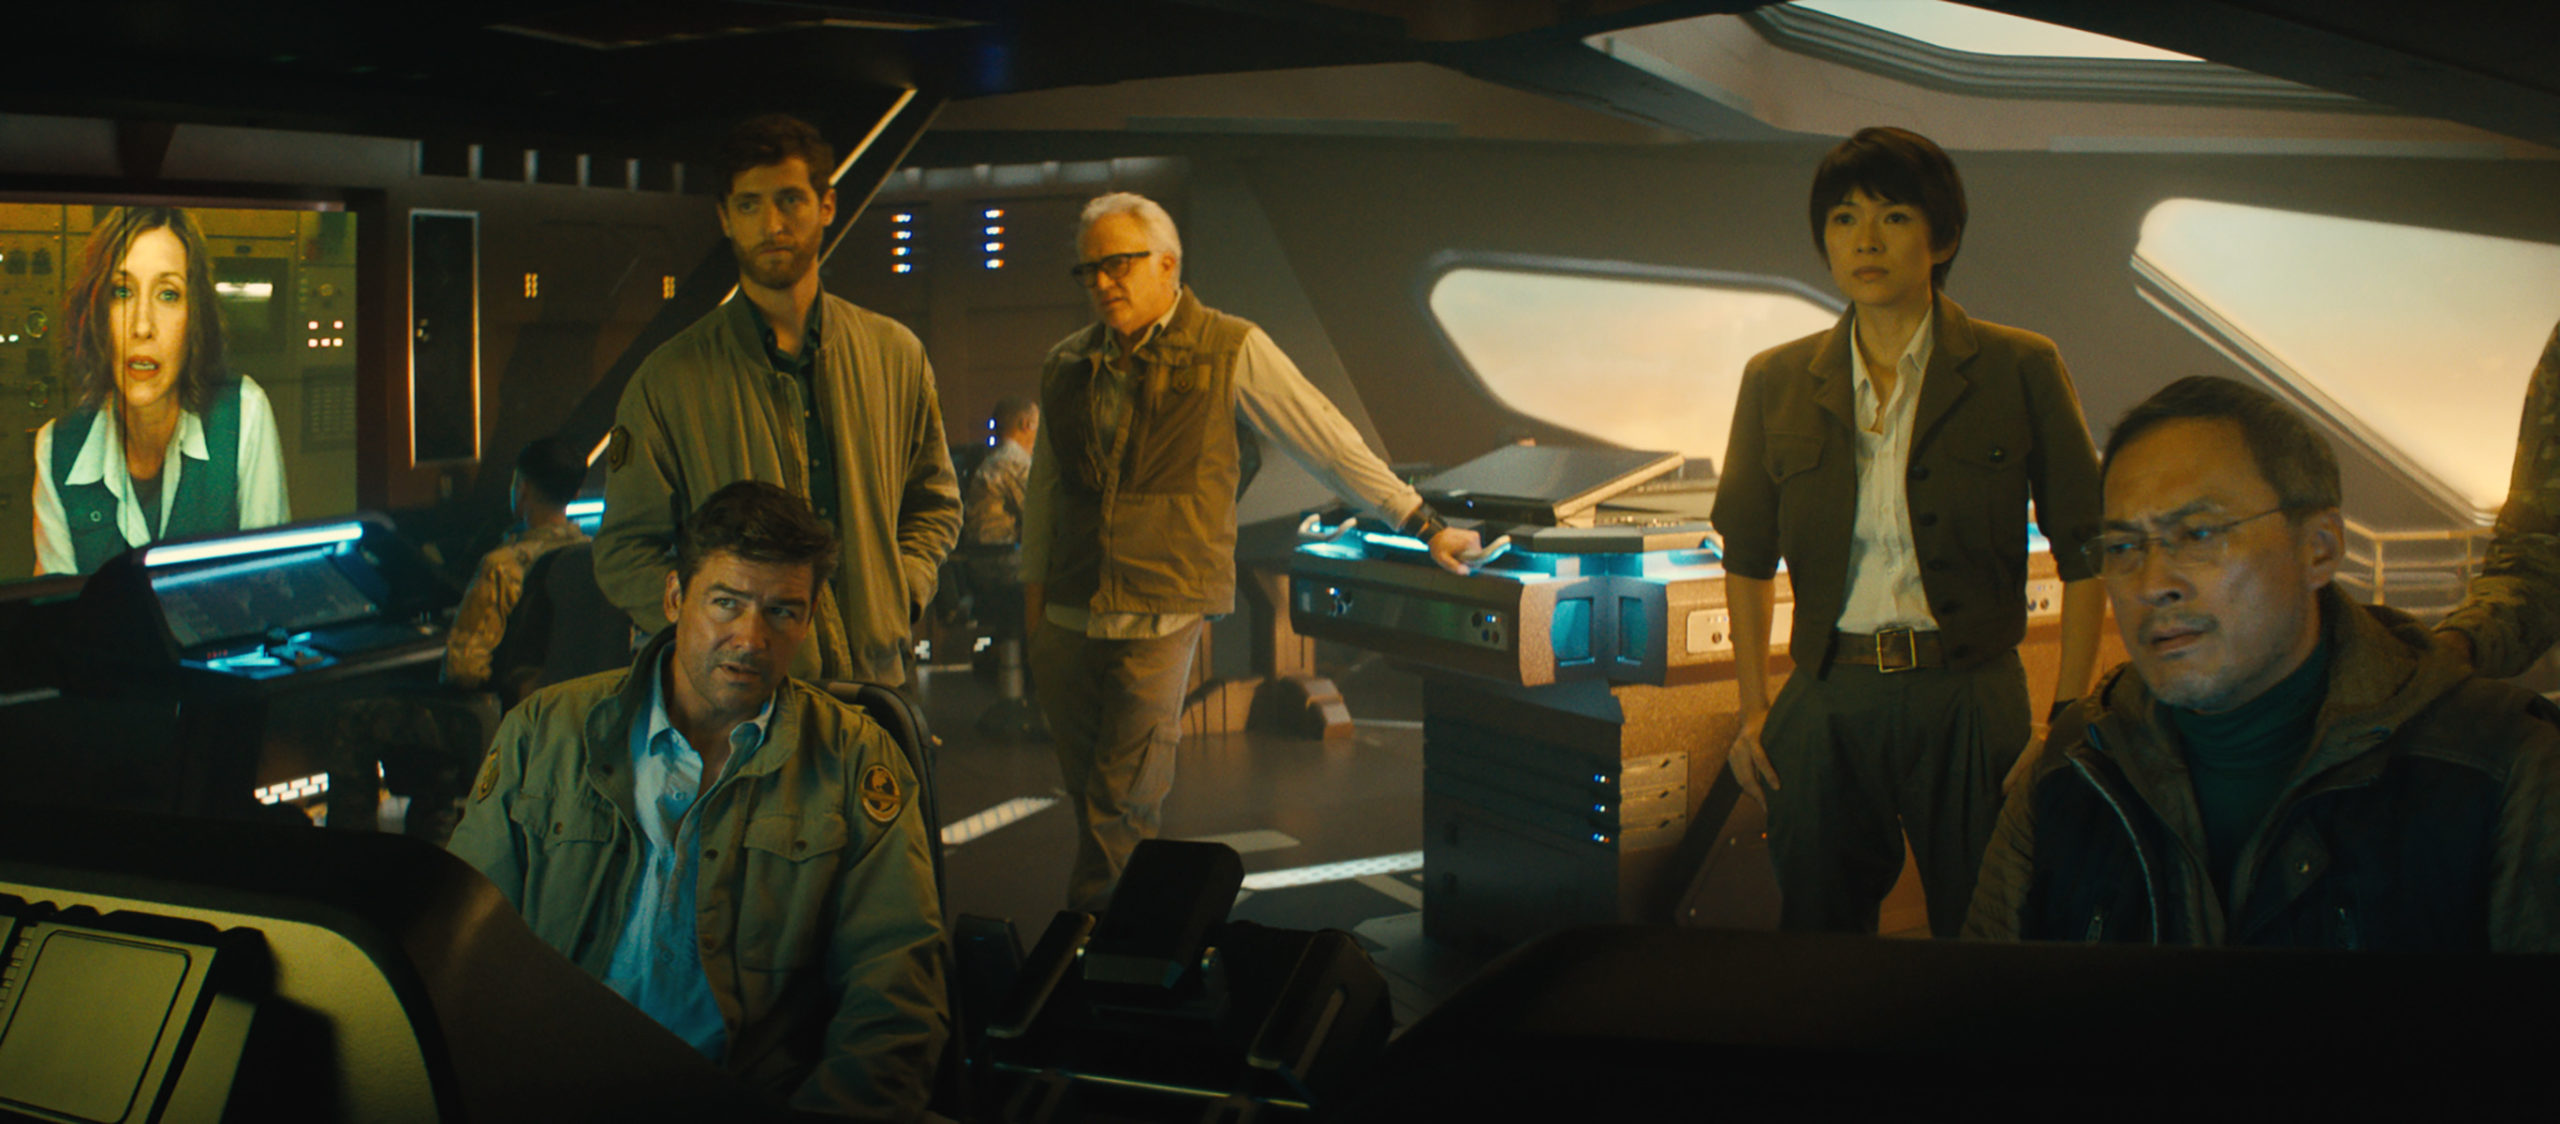 """(L-R) VERA FARMIGA as Dr. Emma Russell, KYLE CHANDLER as Dr. Mark Russell, THOMAS MIDDLEDITCH as Sam Coleman, BRADLEY WHITFORD as Dr. Rick Stanton, ZIYI ZHANG as Dr. Ilene Chen and KEN WATANABE as Dr. Ishiro Serizawa in Warner Bros. Pictures' and Legendary Pictures' action adventure """"GODZILLA: KING OF THE MONSTERS,"""" a Warner Bros. Pictures release."""